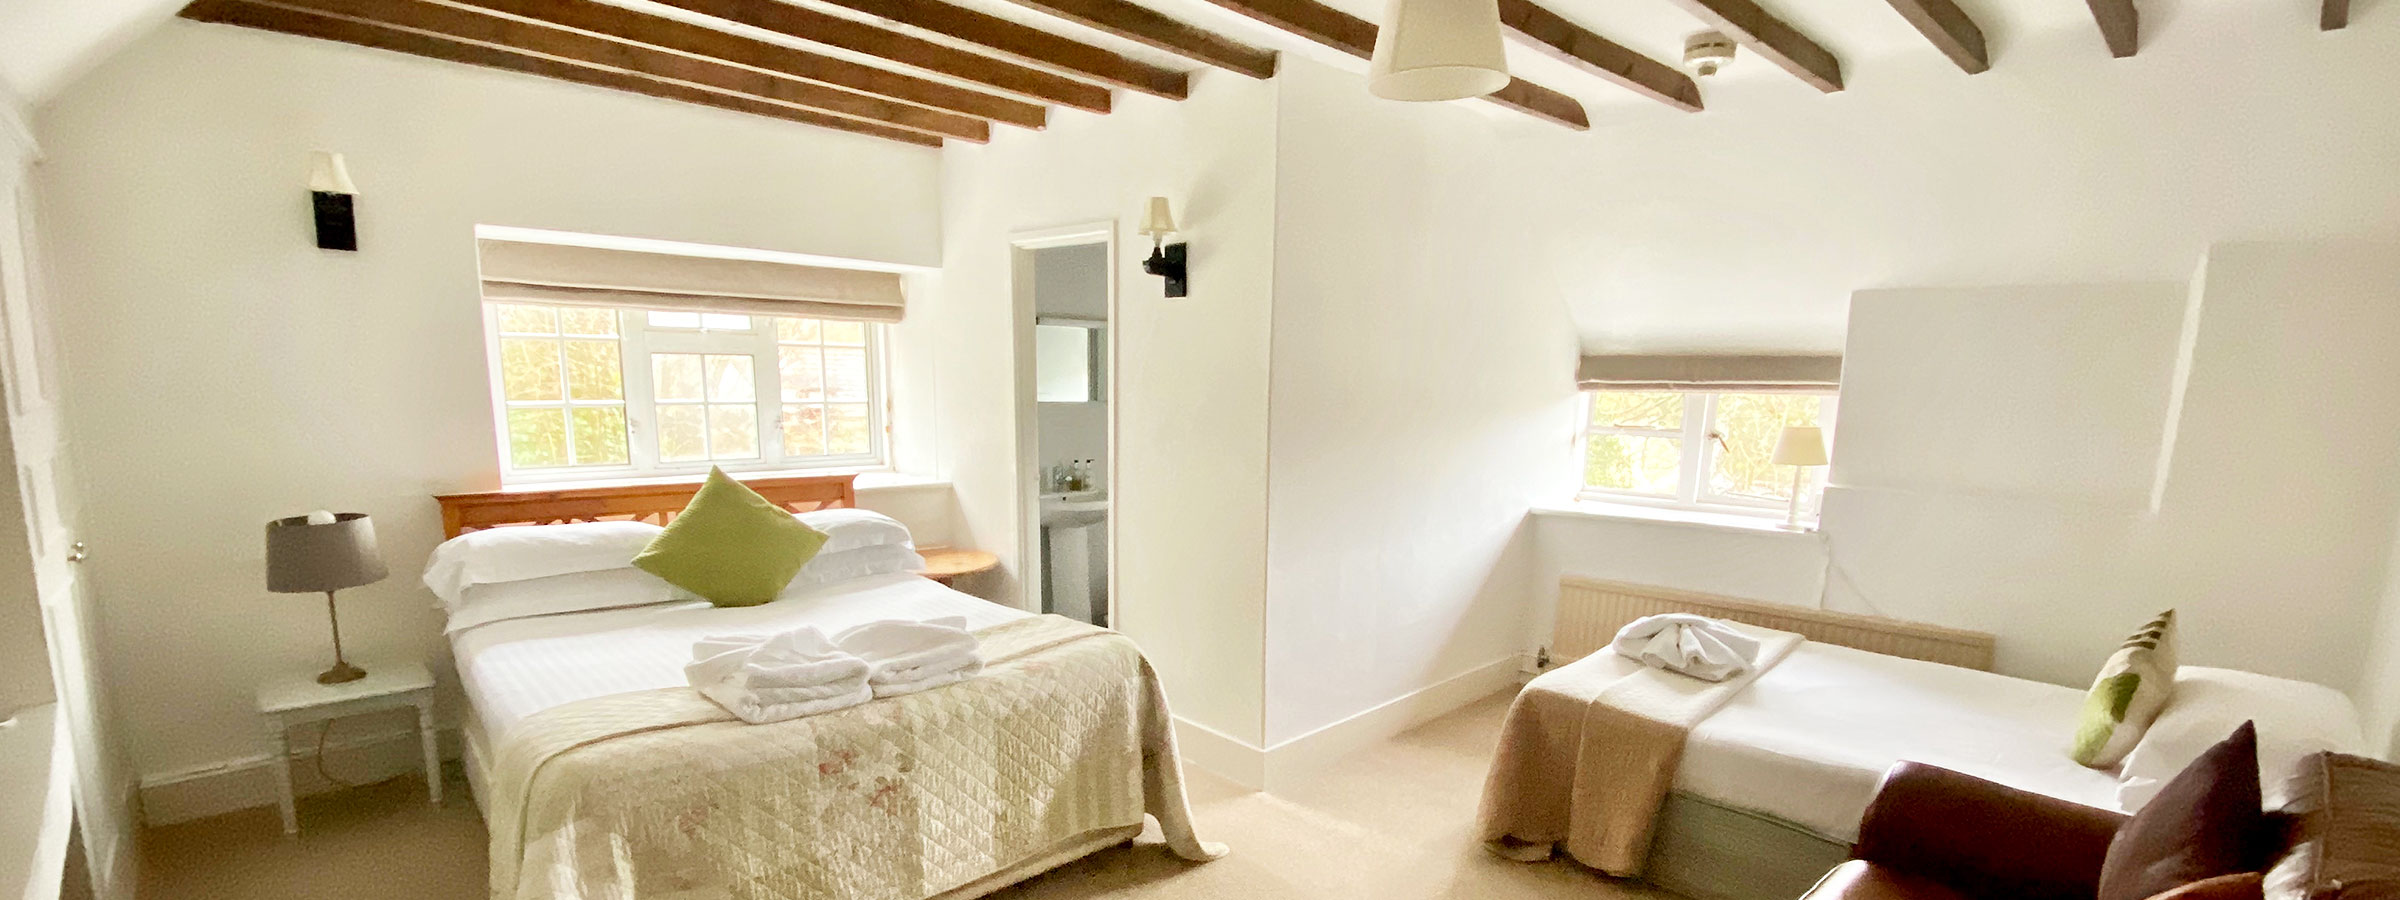 Home Farm Hotel Rooms - Hotel in Honiton